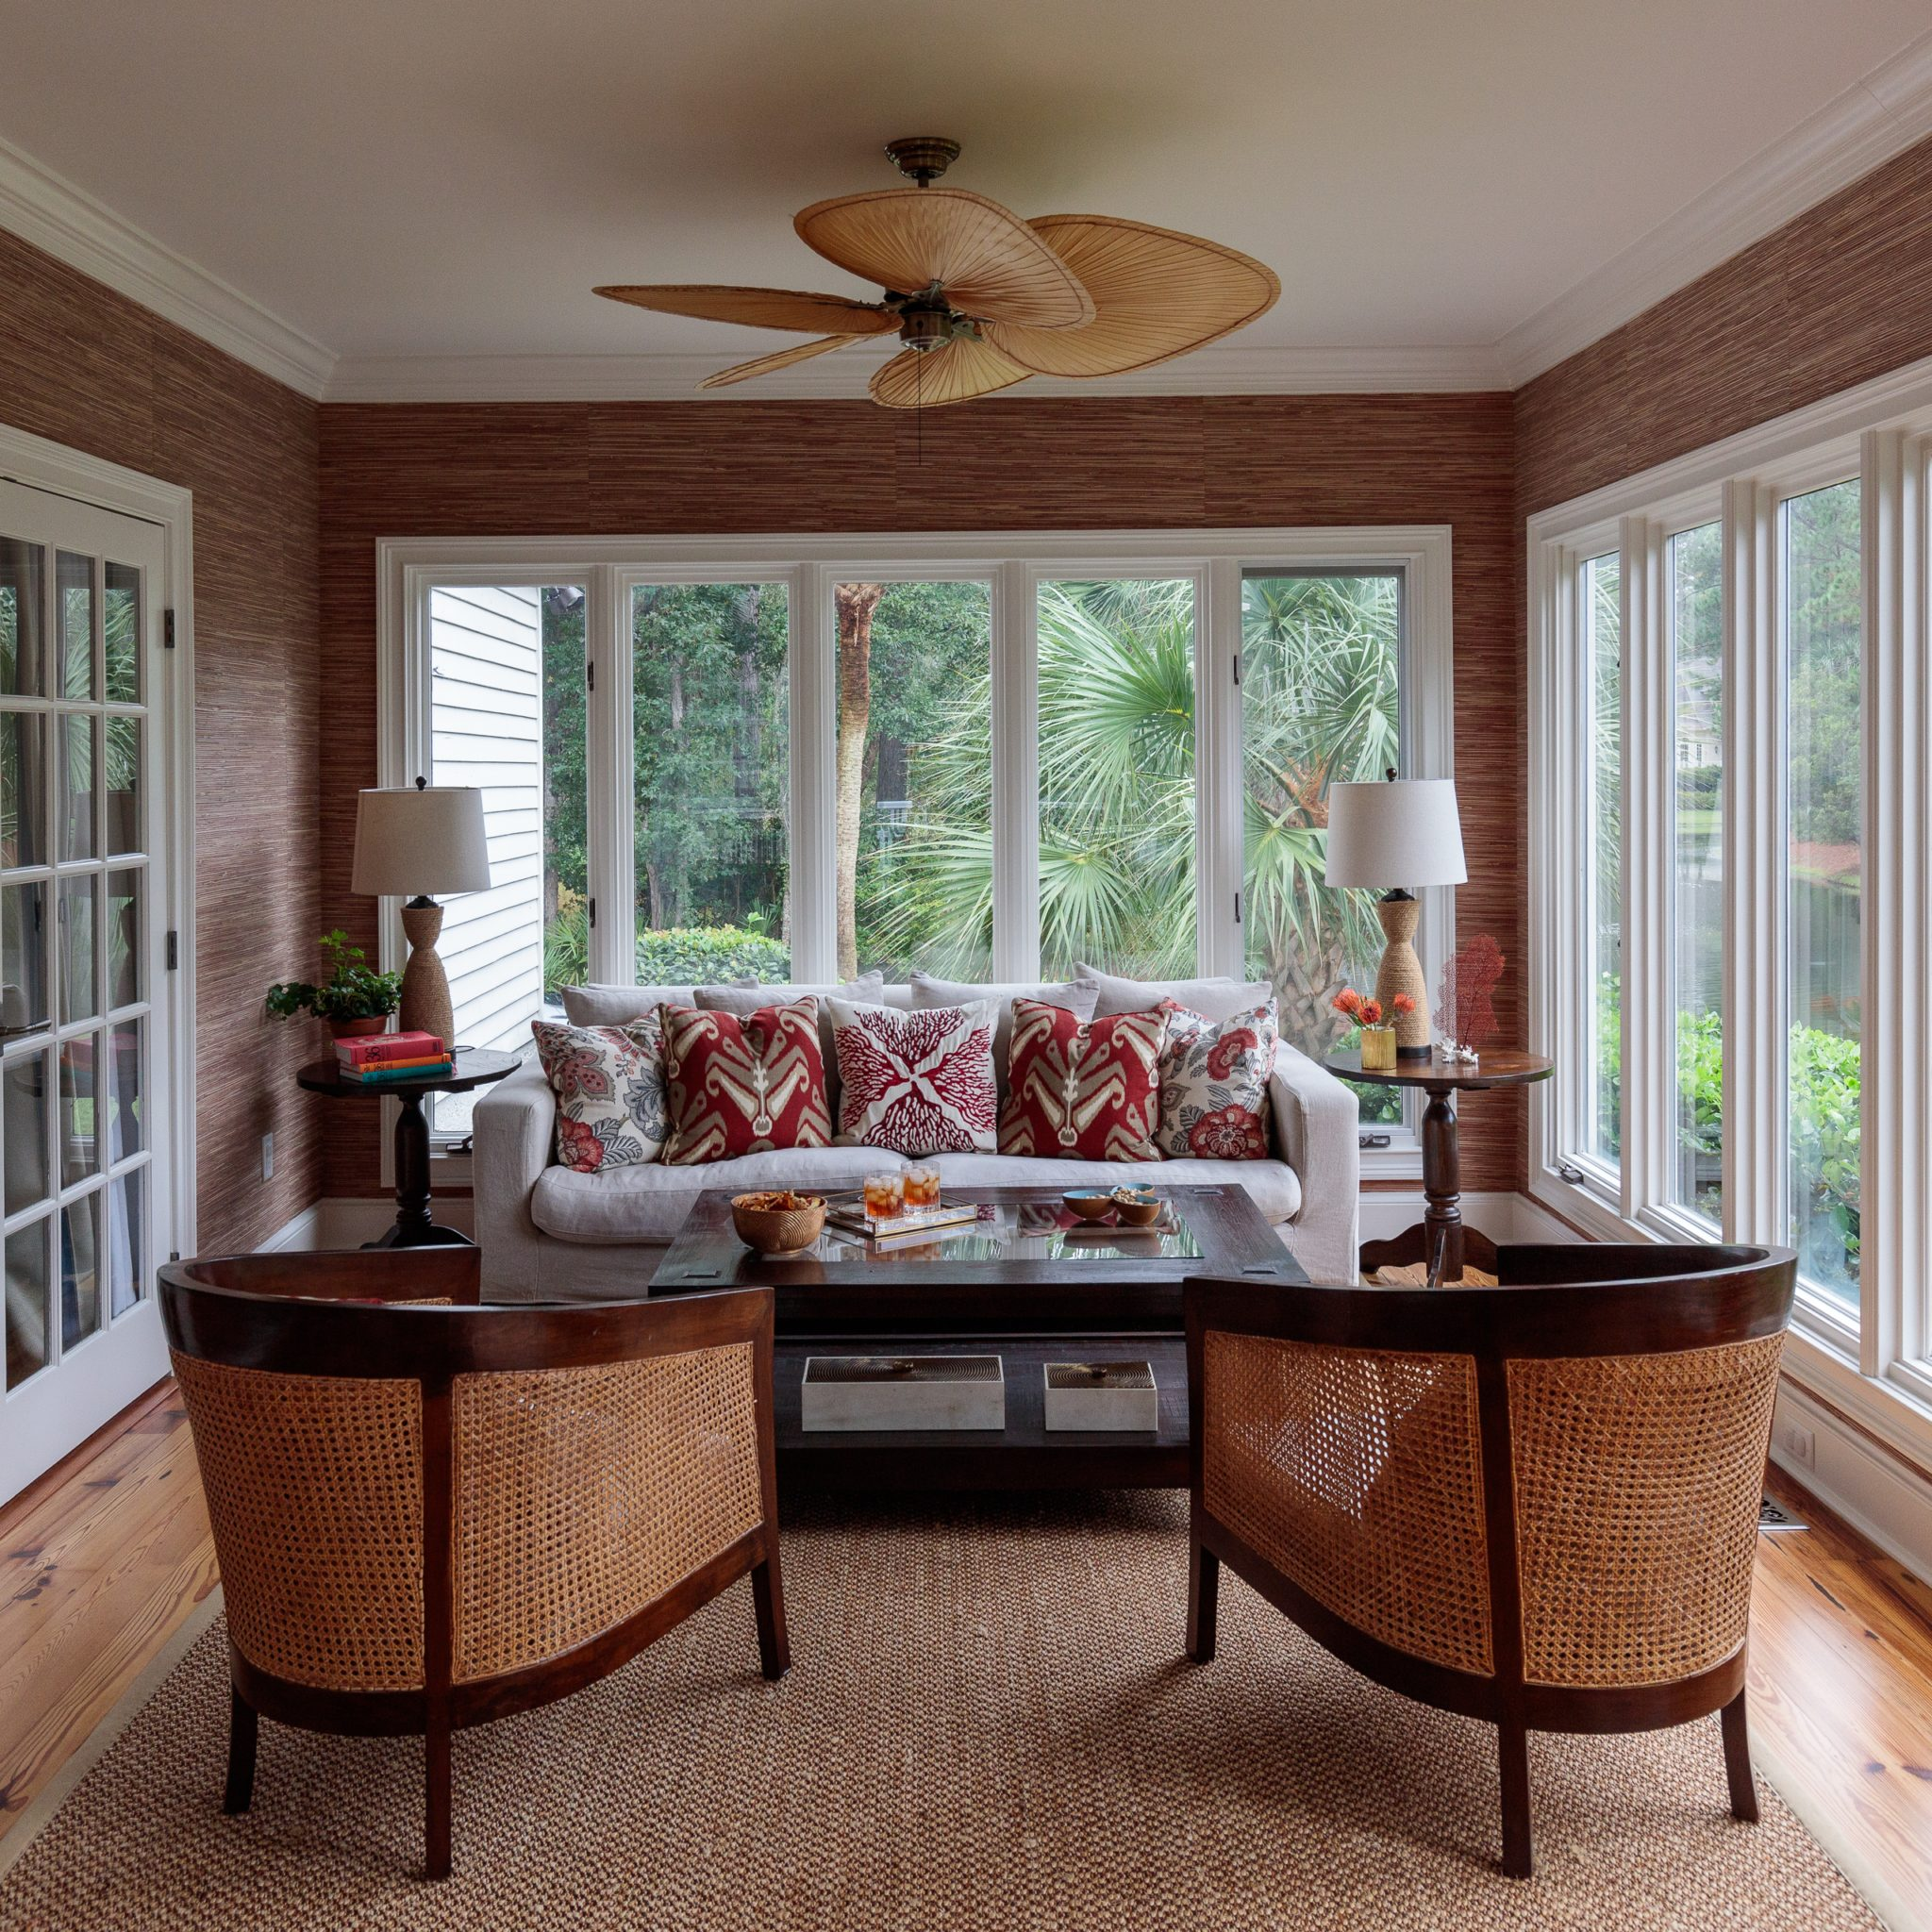 Seagrass walls, cane chairs and bamboo fan bring coastal glam to the sunroom by J Banks Design